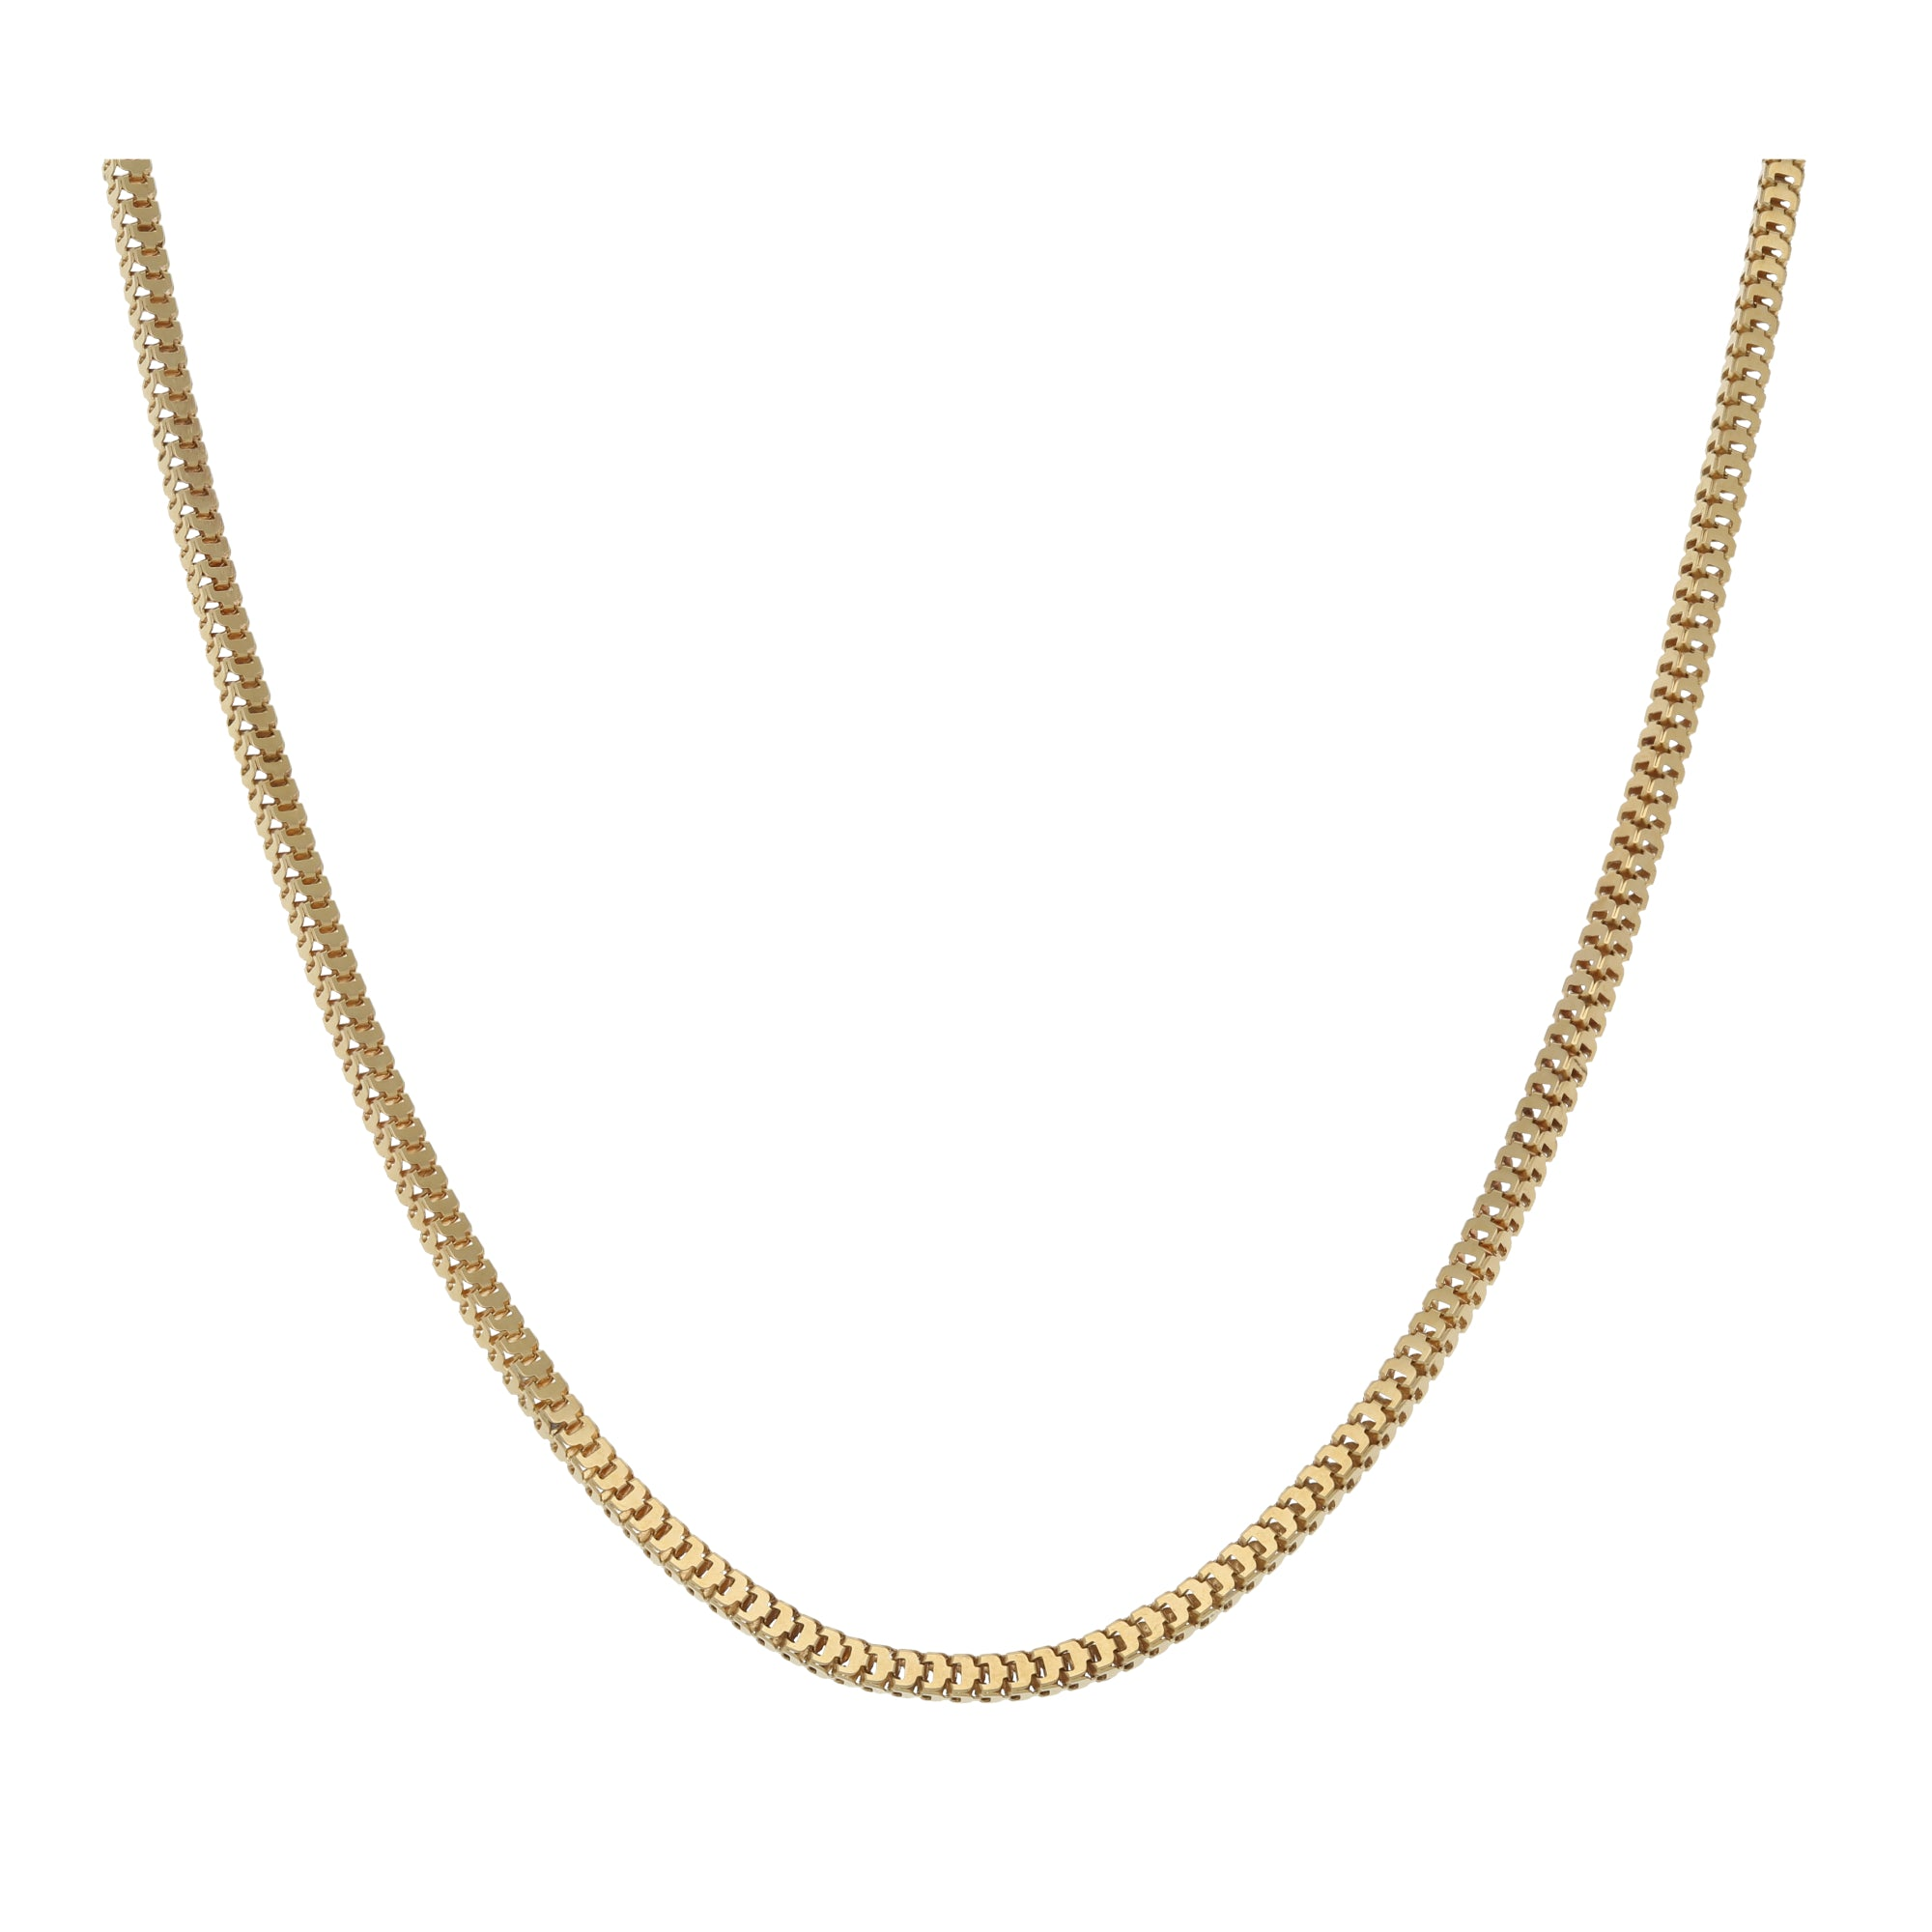 18ct Gold Ladies Fancy Necklace 20